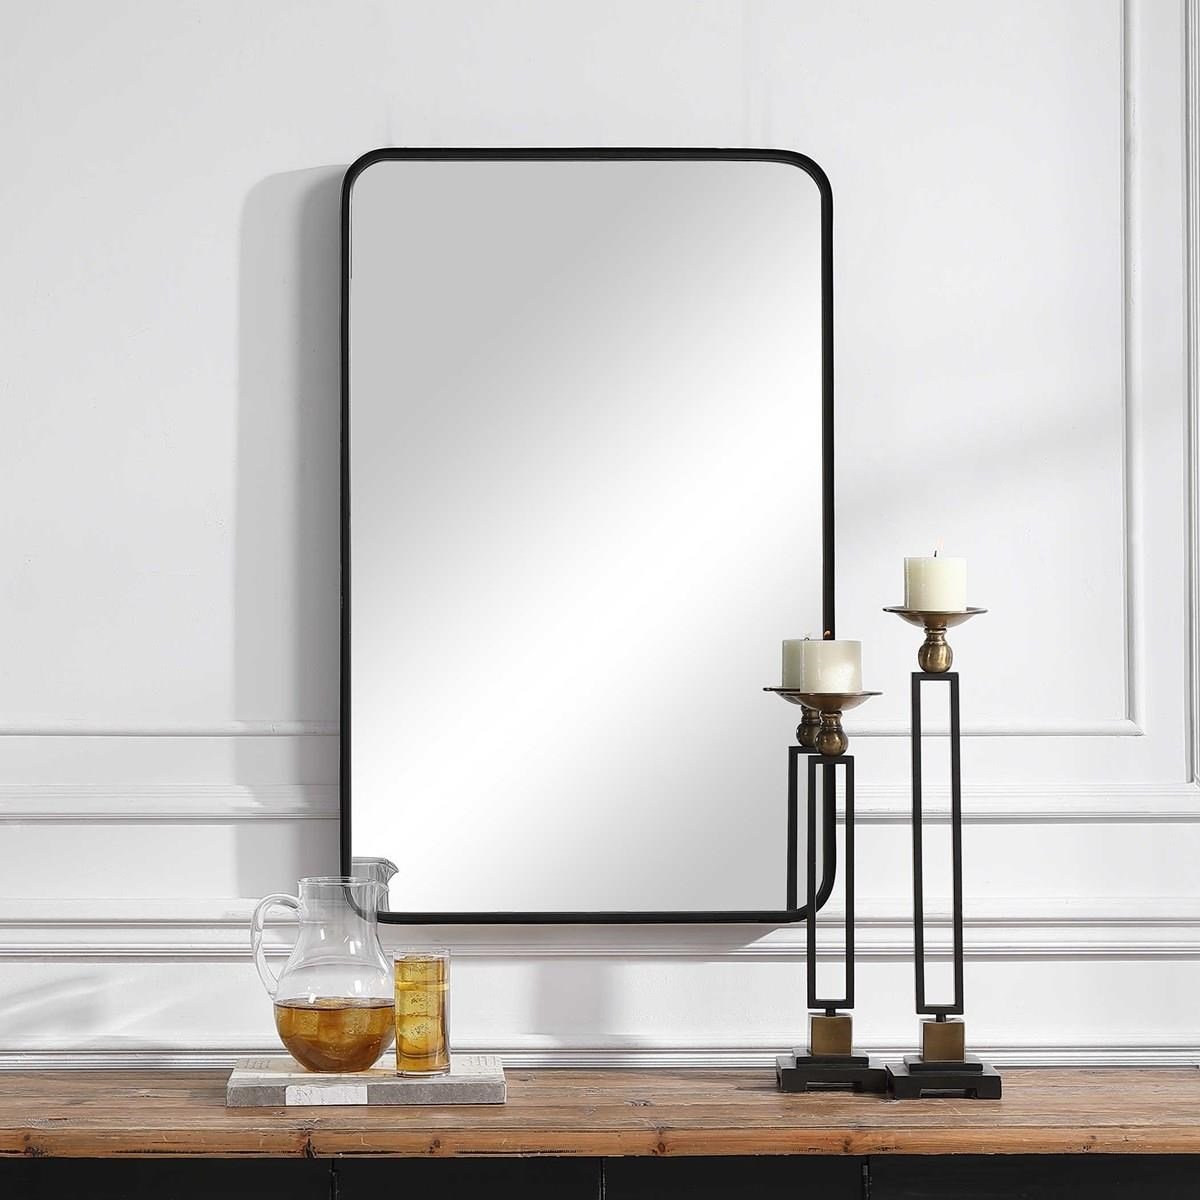 Mirrors SERENITY WALL MIRROR by Unique at Walker's Furniture